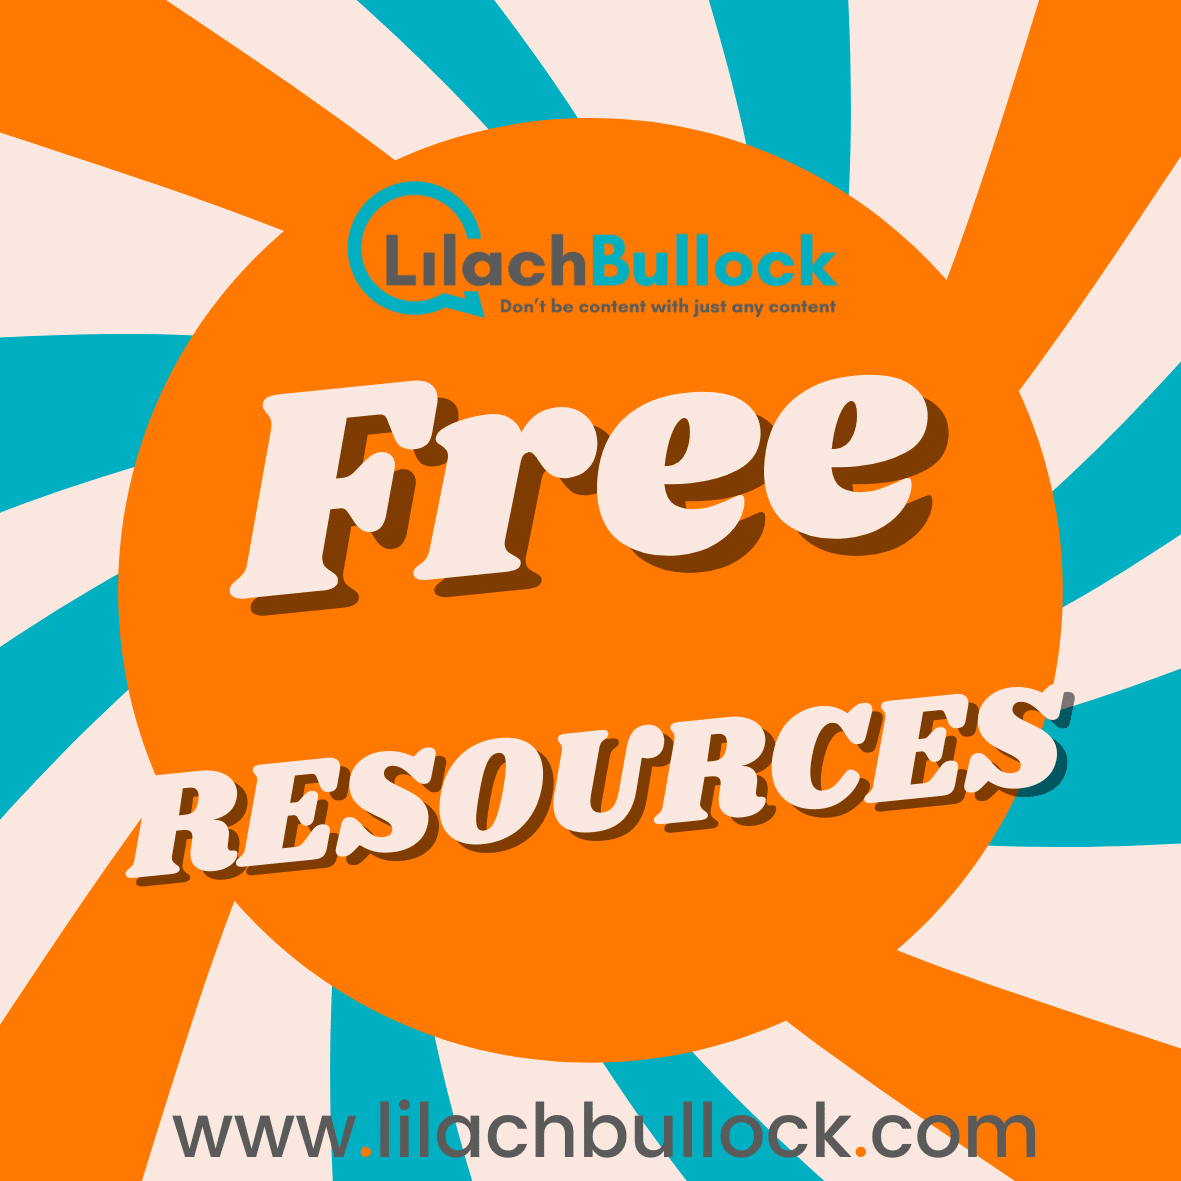 🔥 FREE 5000+ database of top #blogs that accept guest posts, templates and emails to send pitches, checklists and more!  #guestpost #guestblog #guestblogging #guestposting #blogging